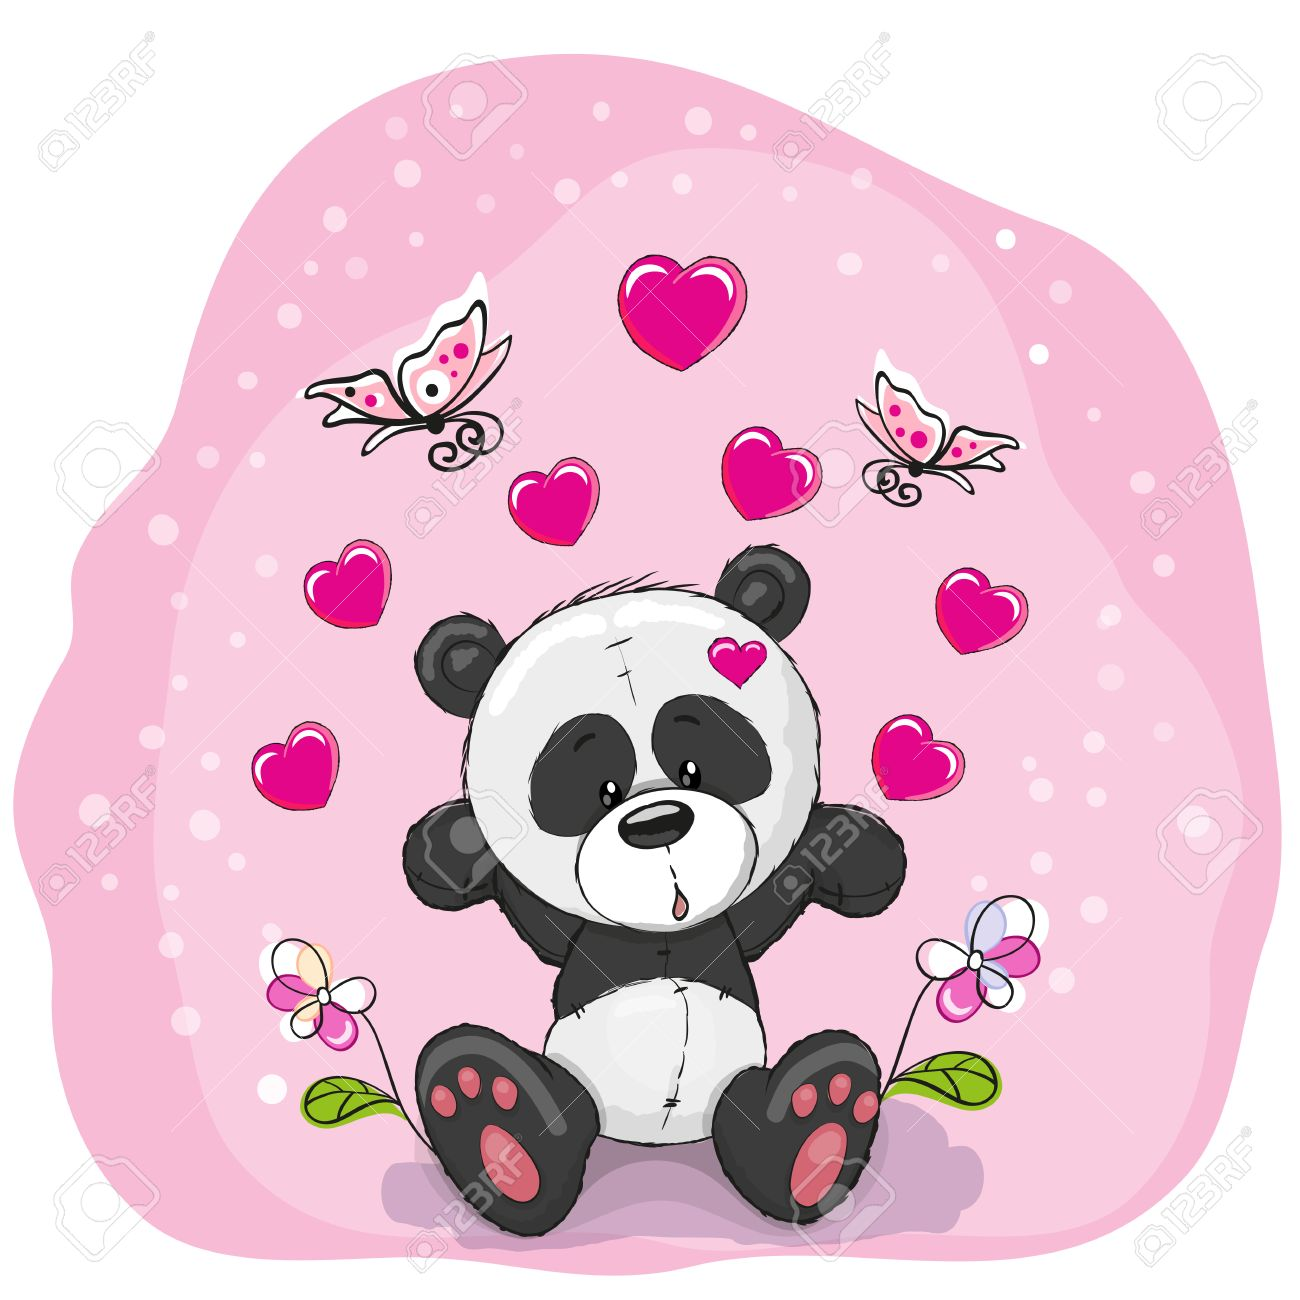 Cute Cartoon Panda With Hearts Flowers And Butterflies Stock Vector